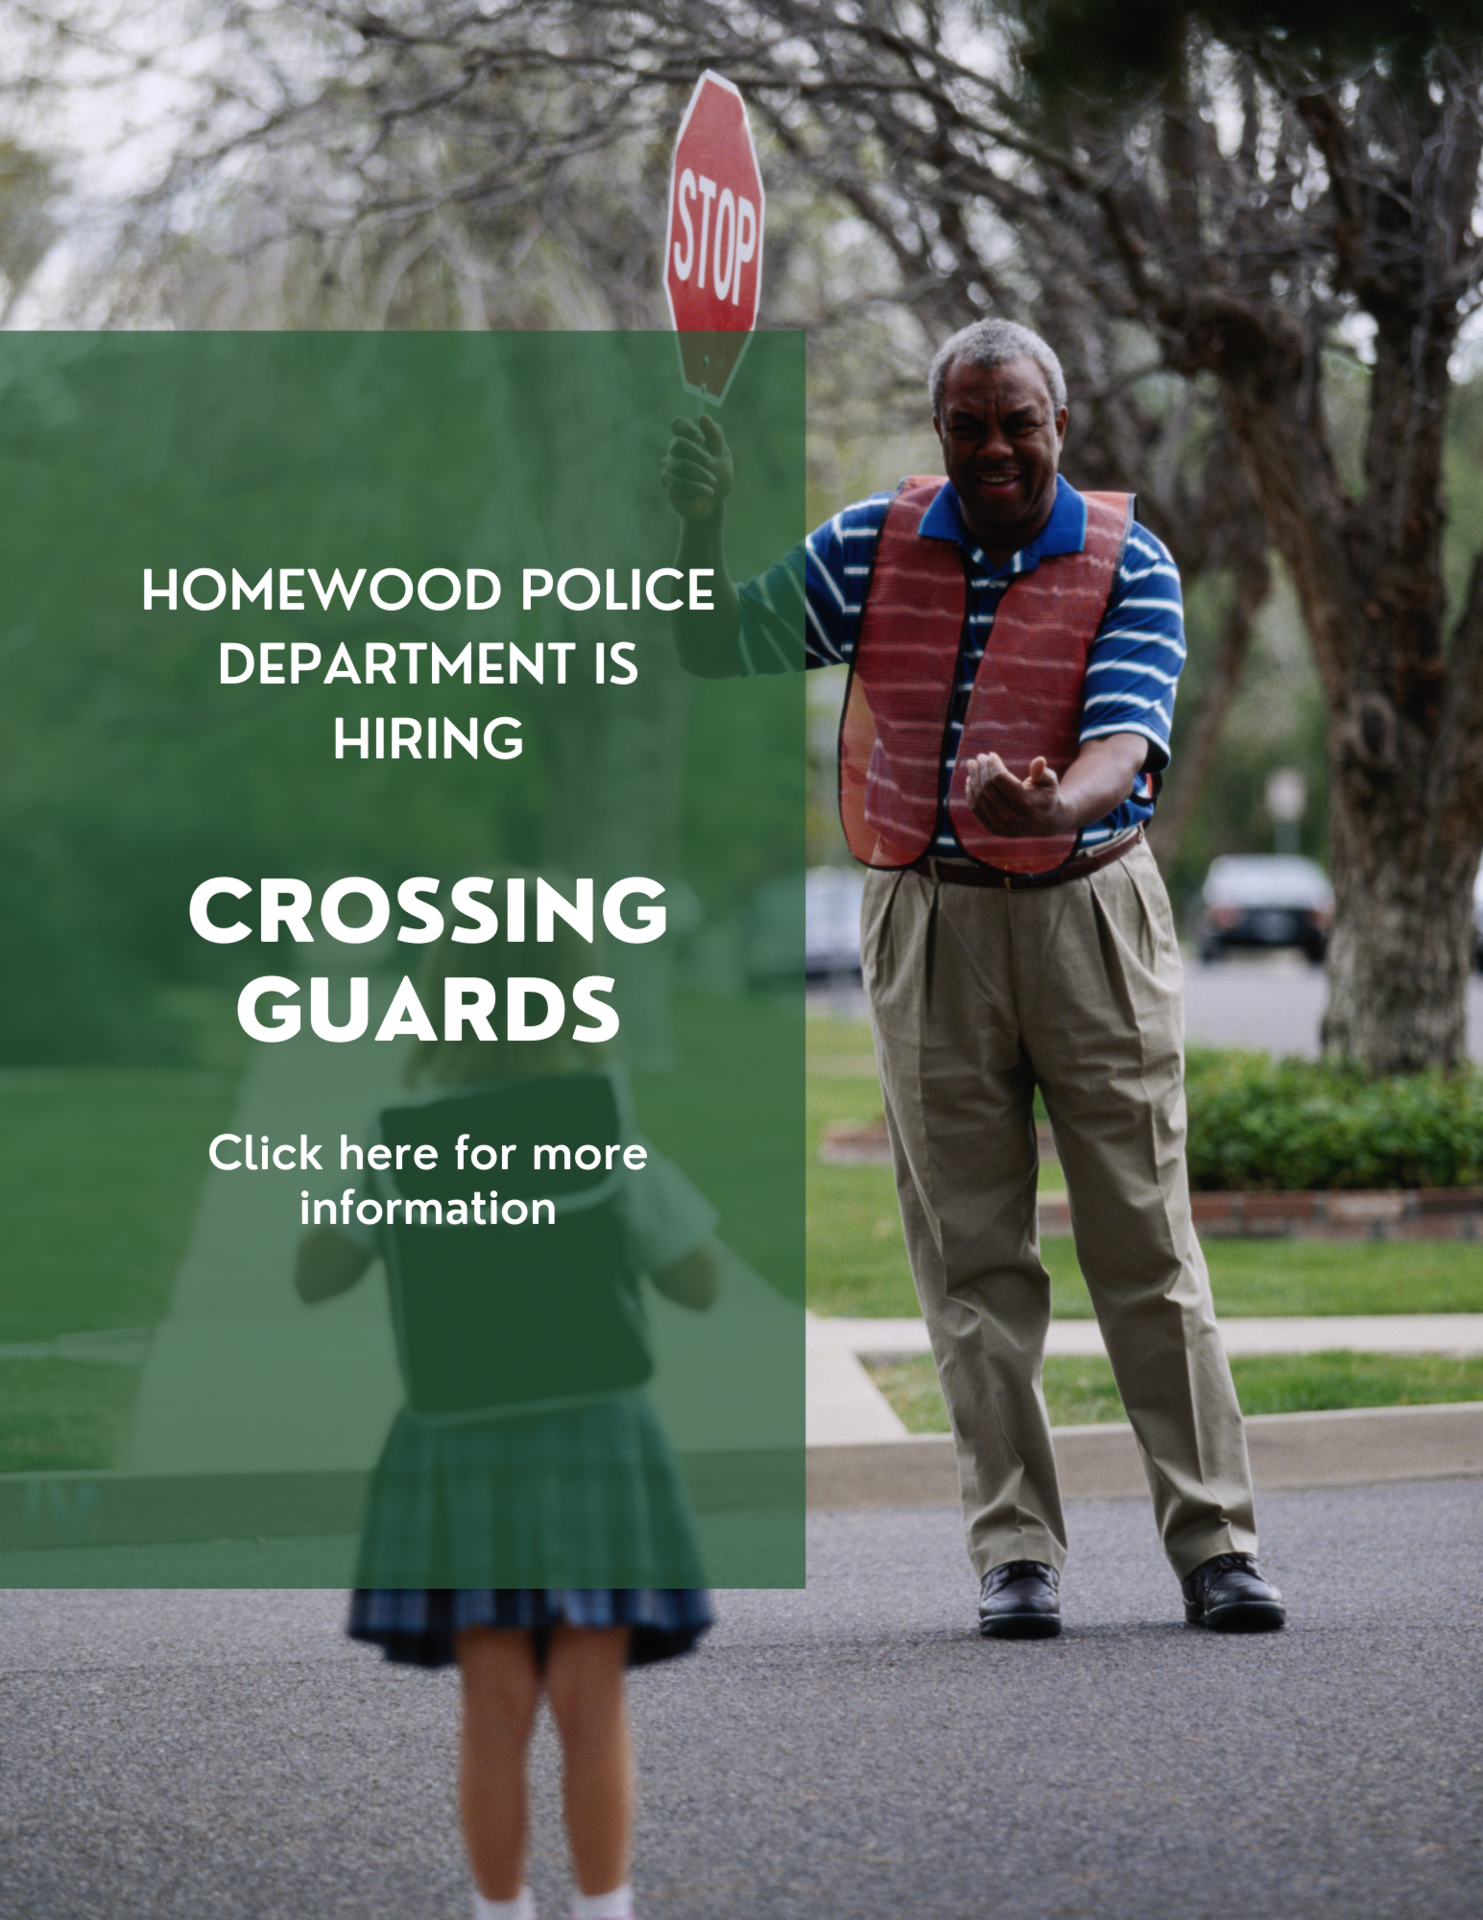 crossing guards wanted